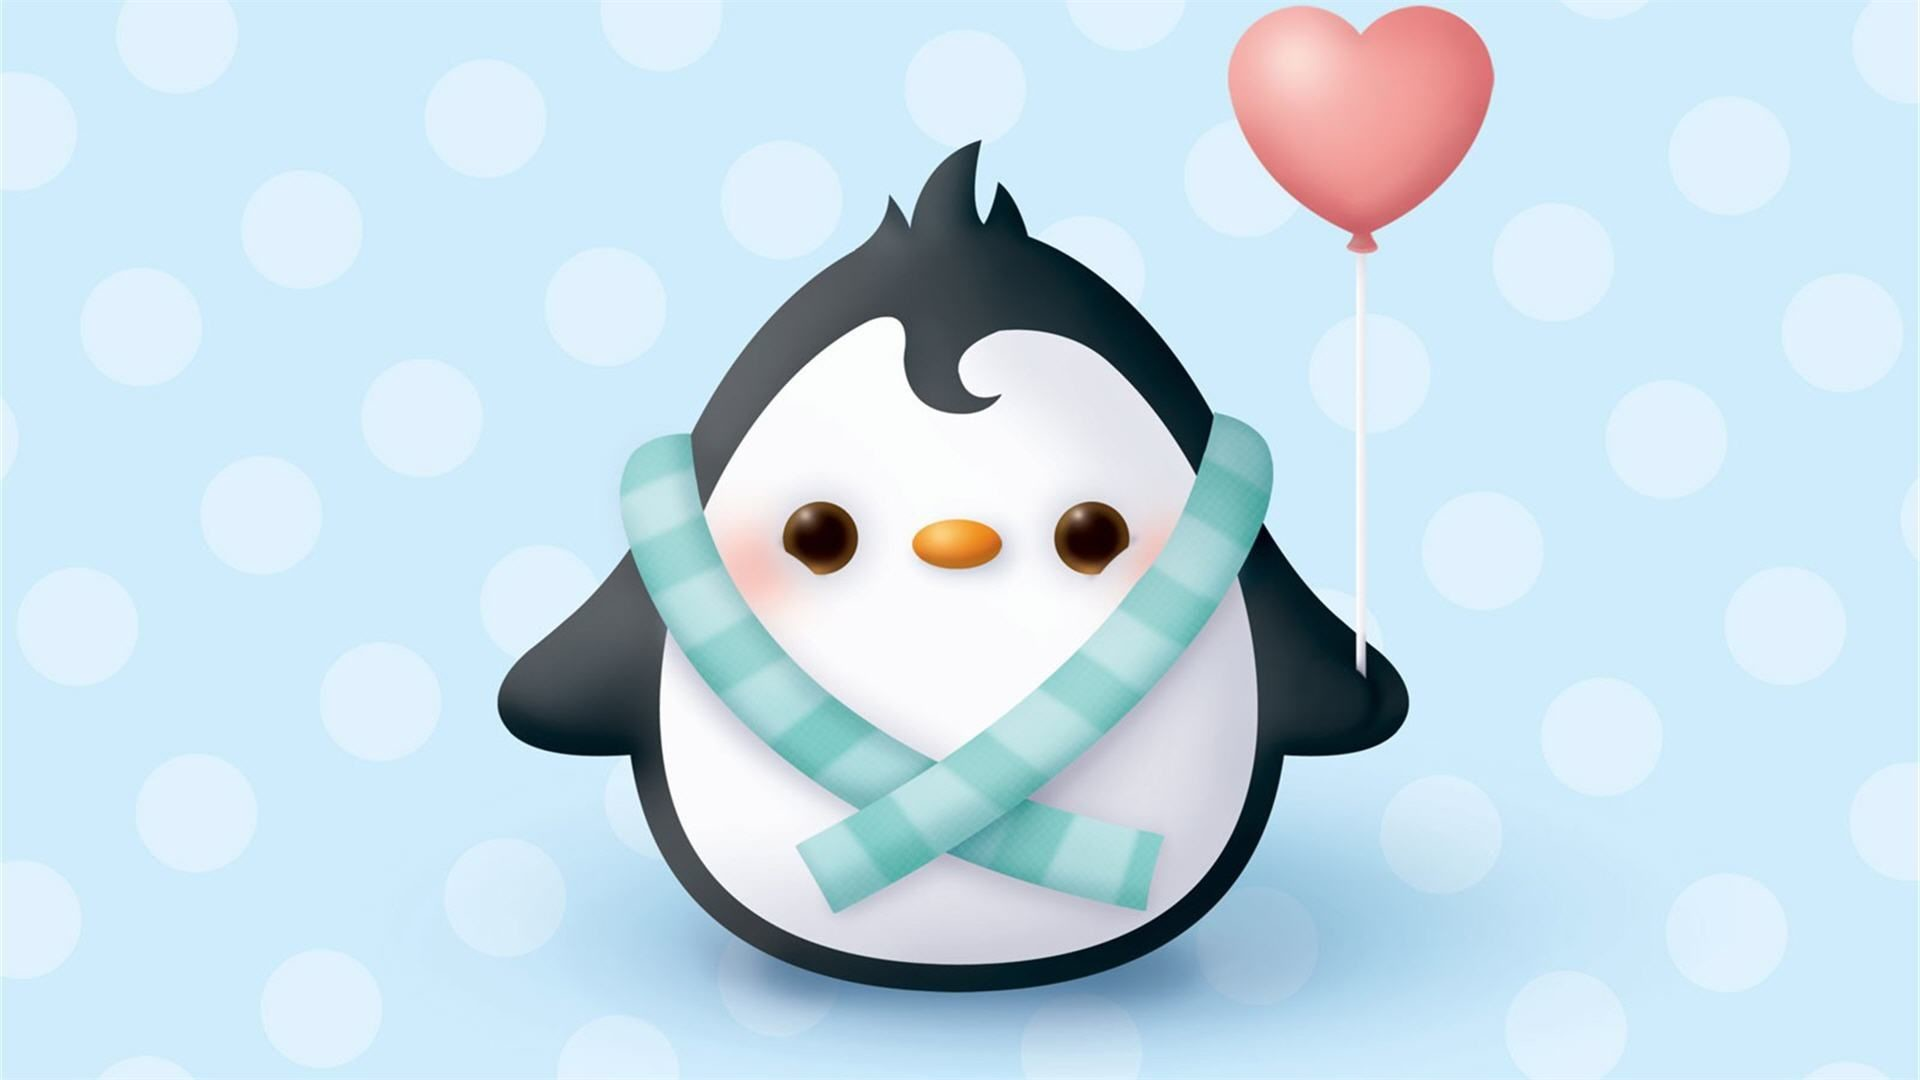 1920x1080 pictures of animation cute animation | Cute Animated Penguins Wallpaper -  ClipArt Best